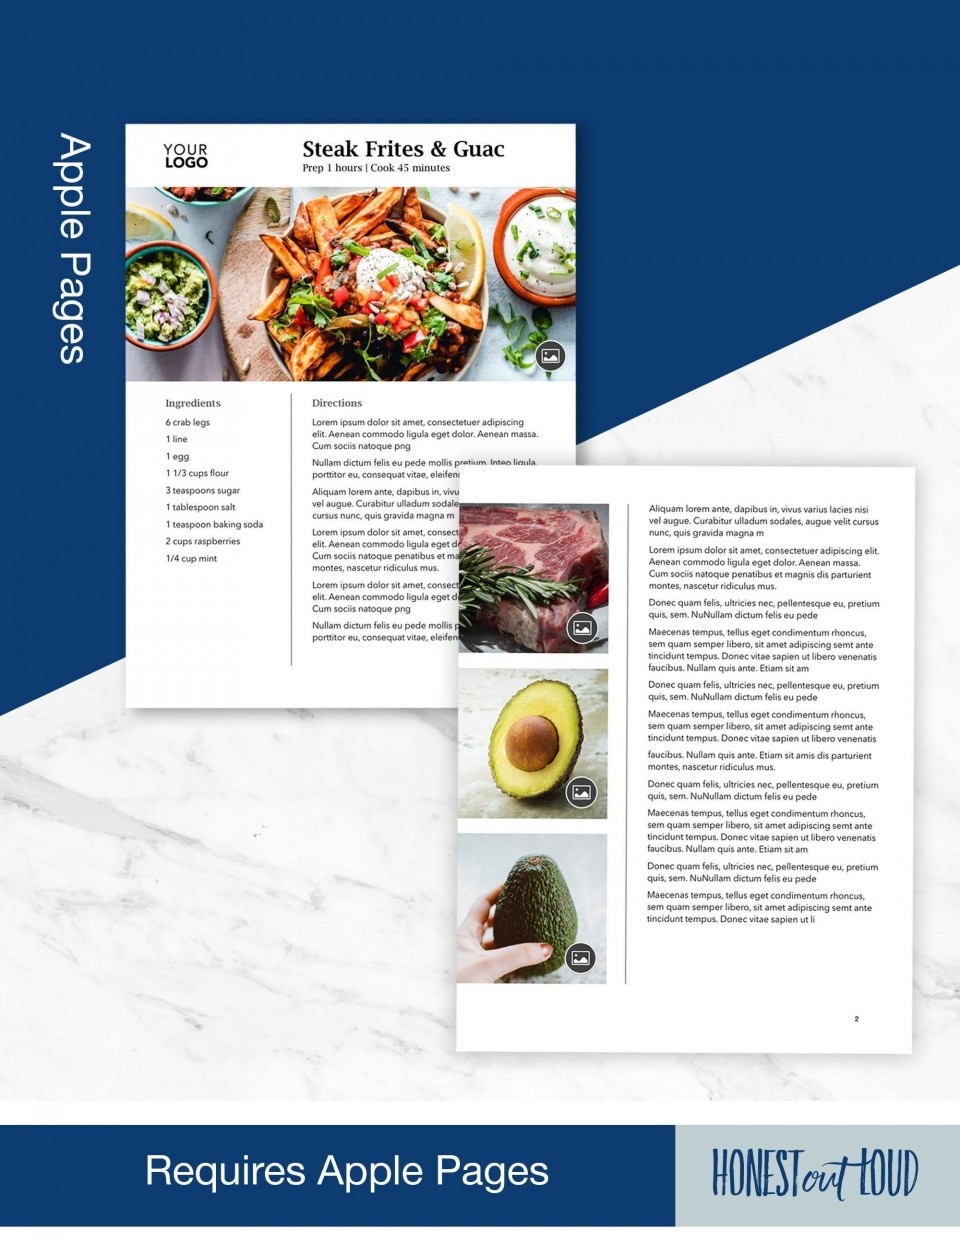 004 Fantastic Free Make Your Own Cookbook Template Download Concept 960